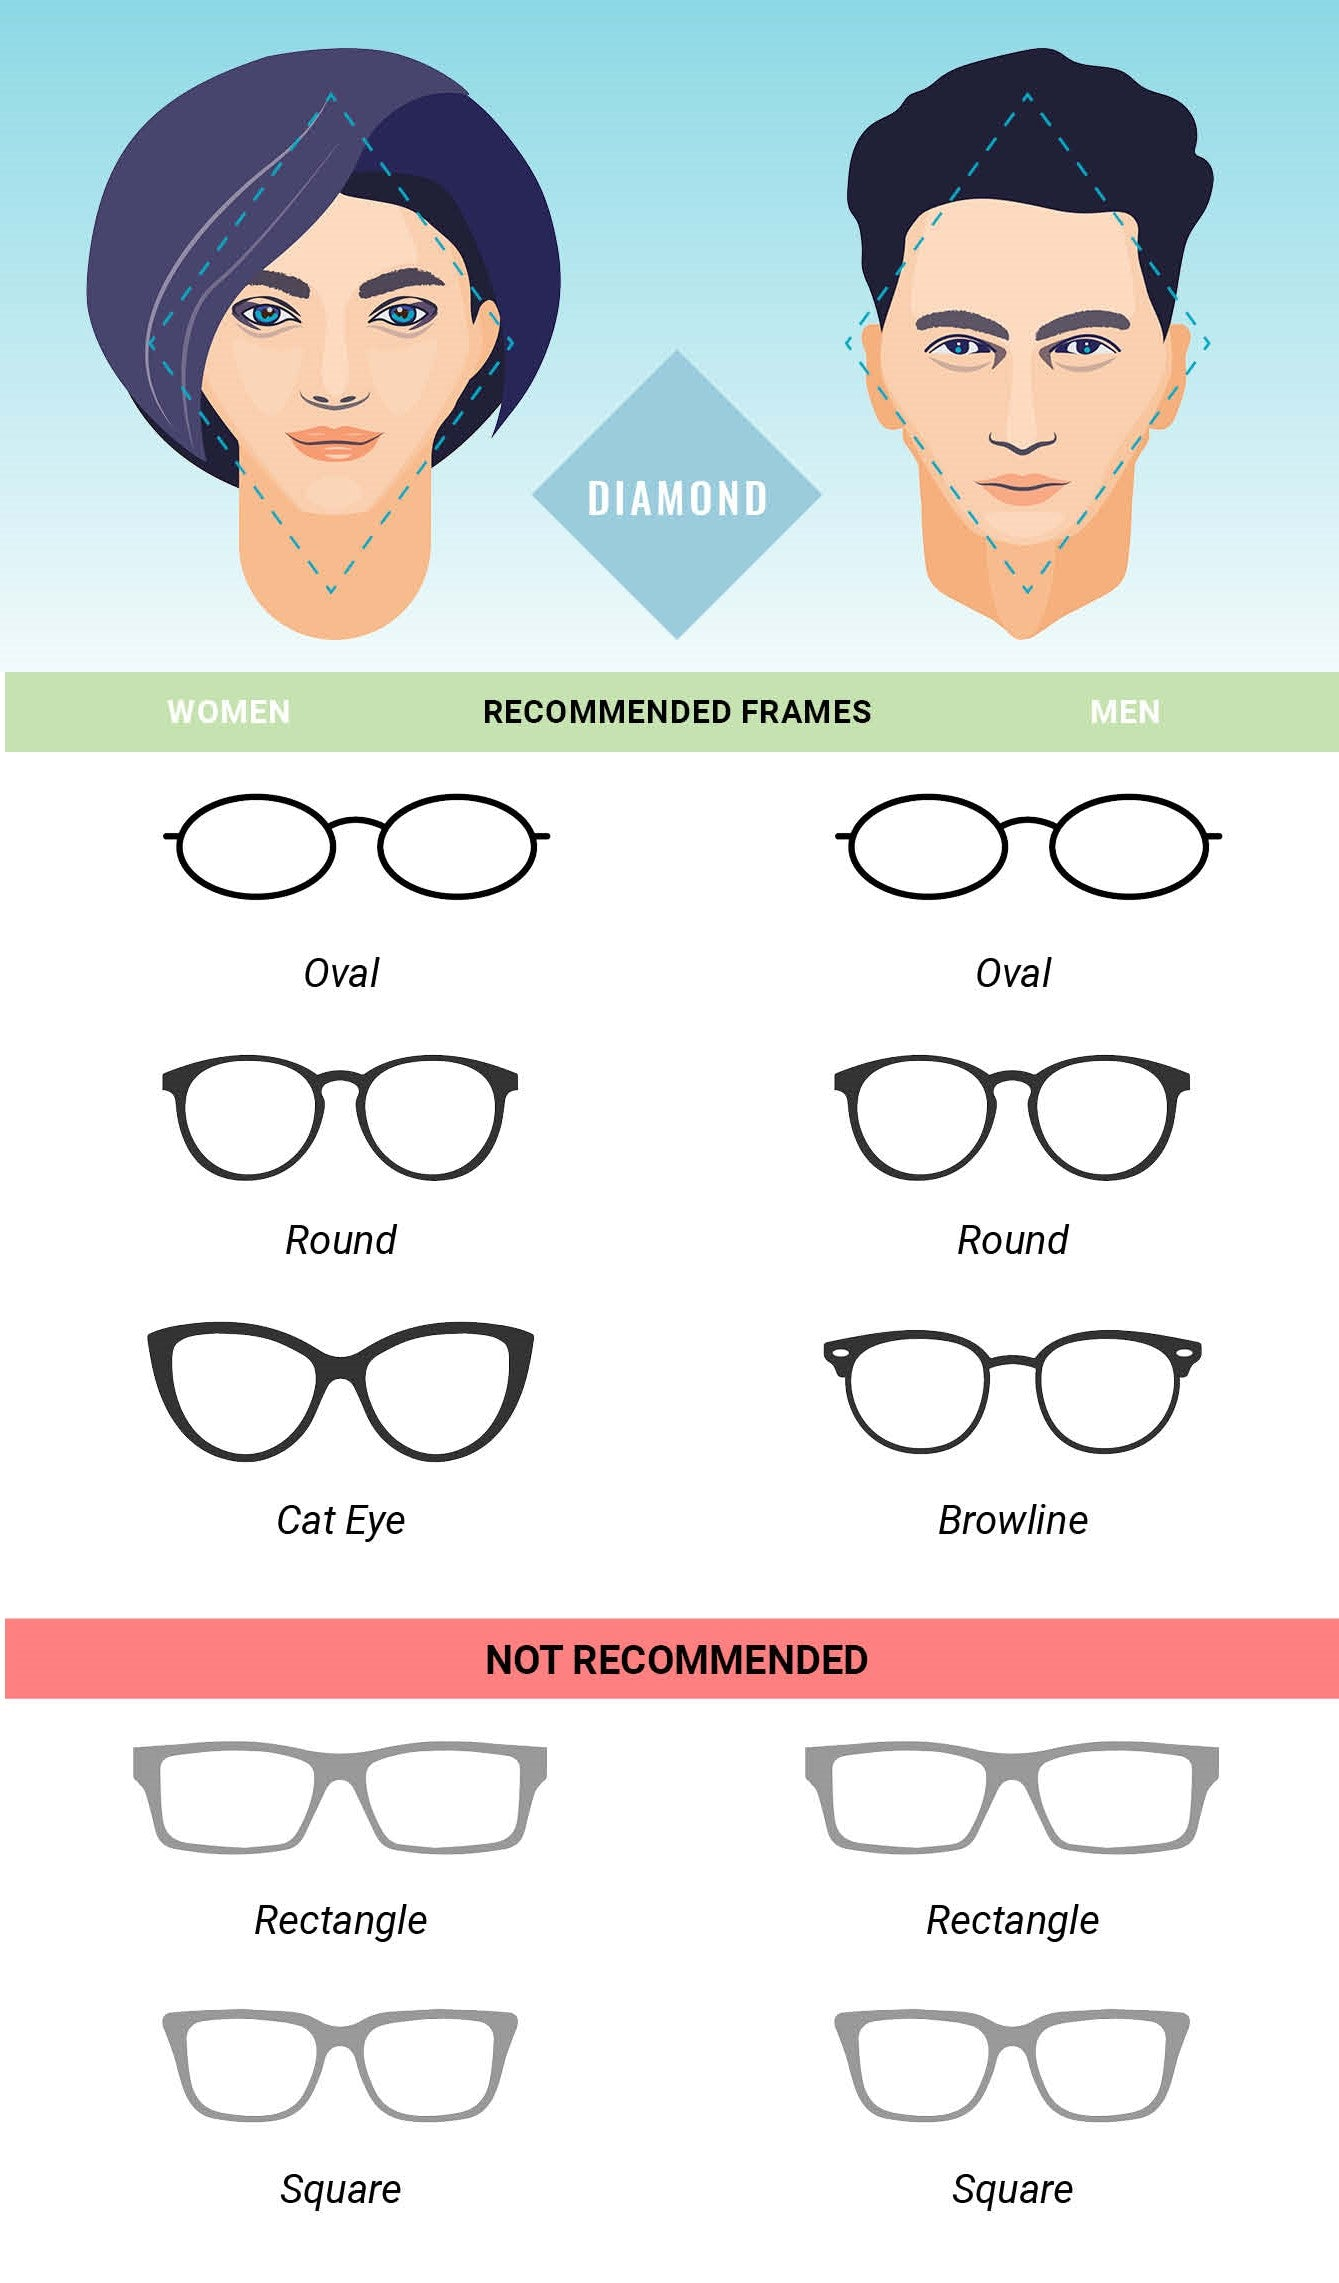 Eyeglass frame recommendations for diamond face shapes for men and women